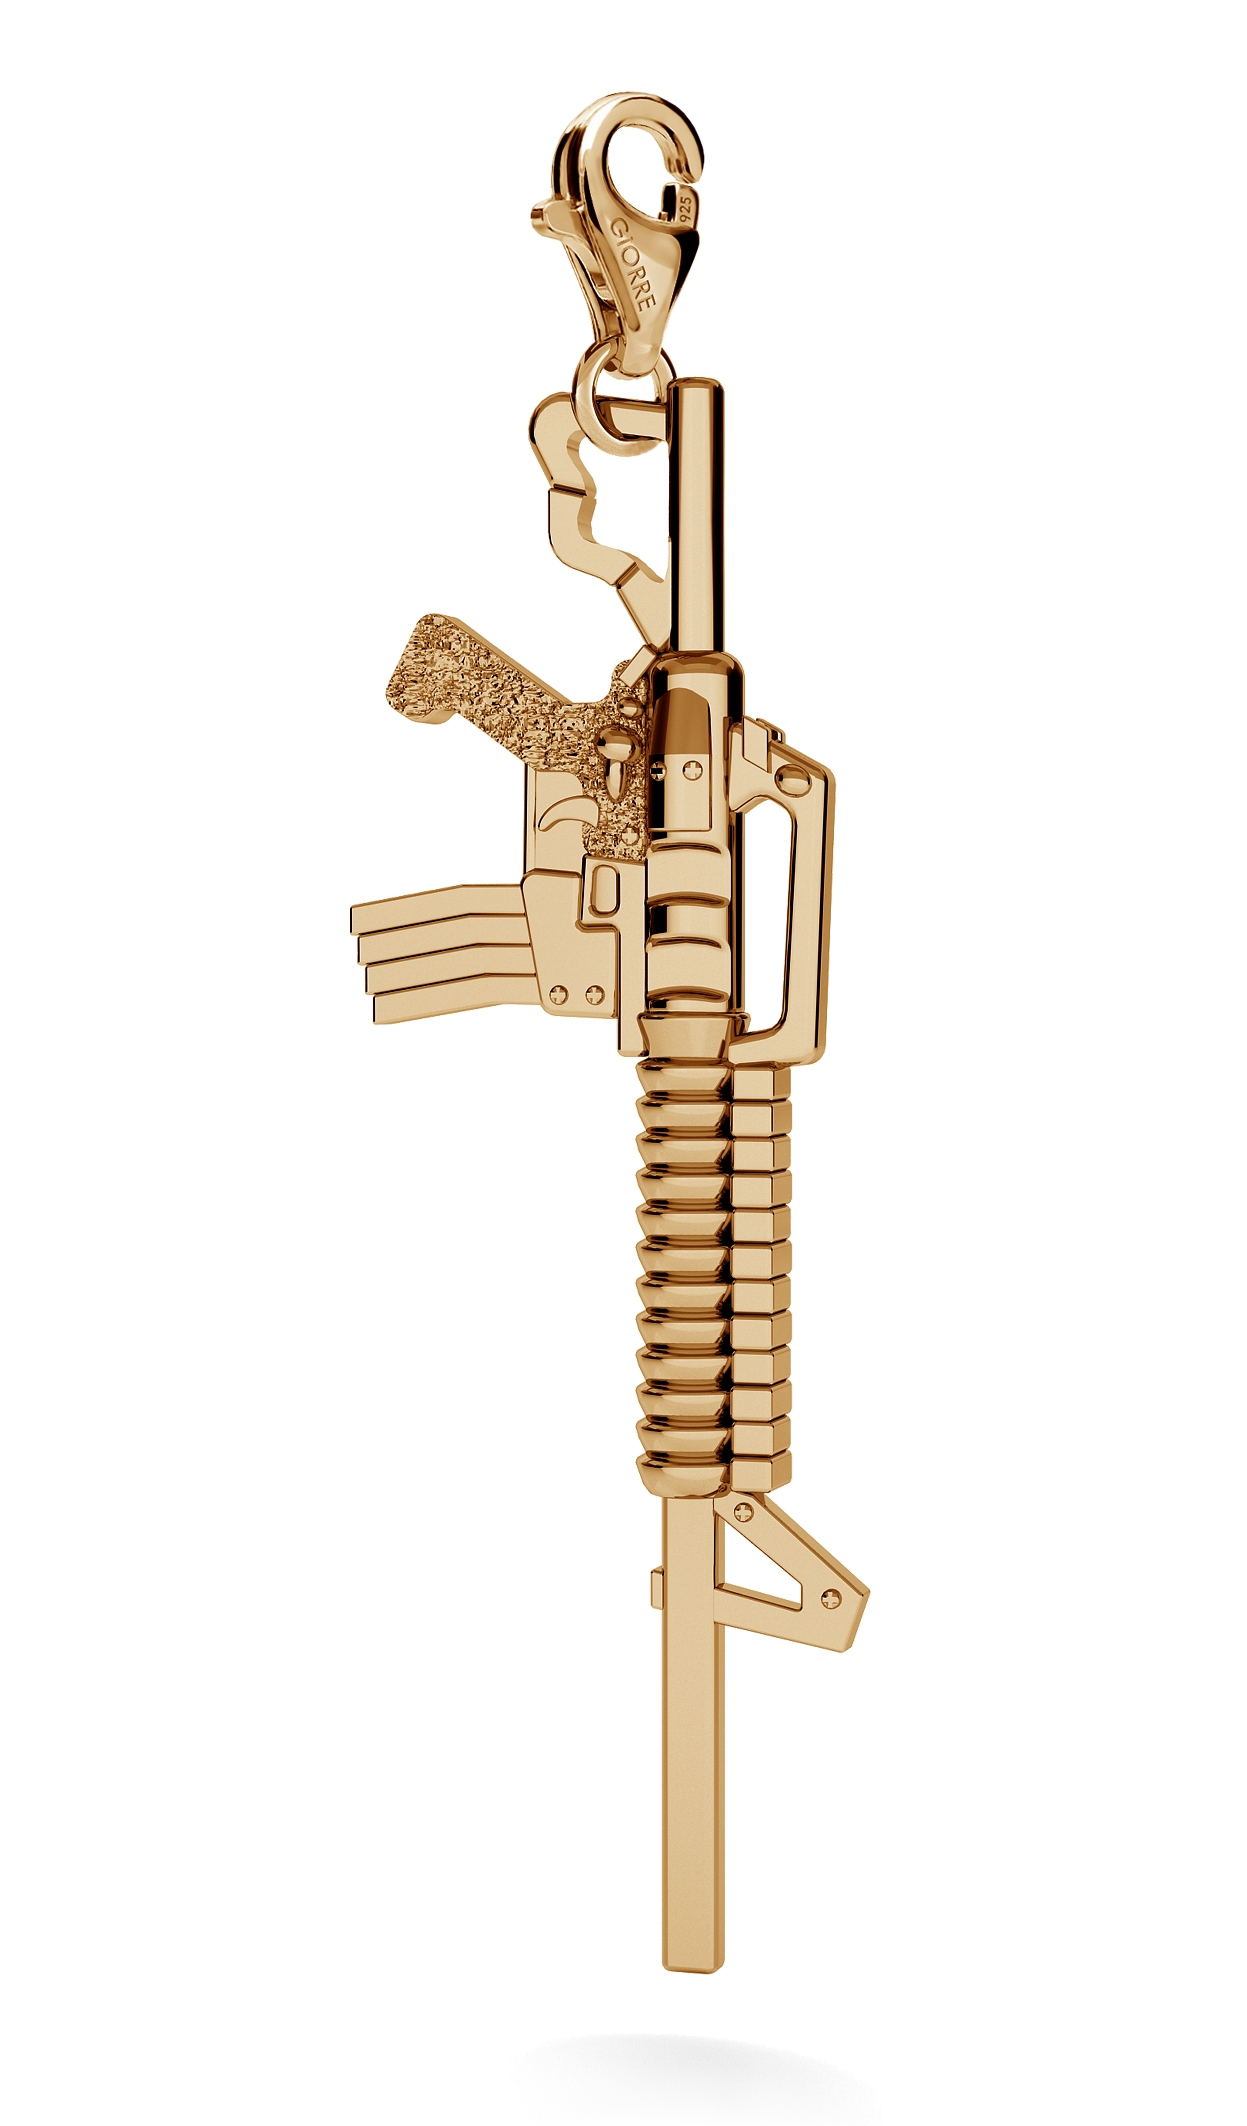 CHARM 90, BIG MACHINE GUN, SILVER 925,  RHODIUM OR GOLD PLATED